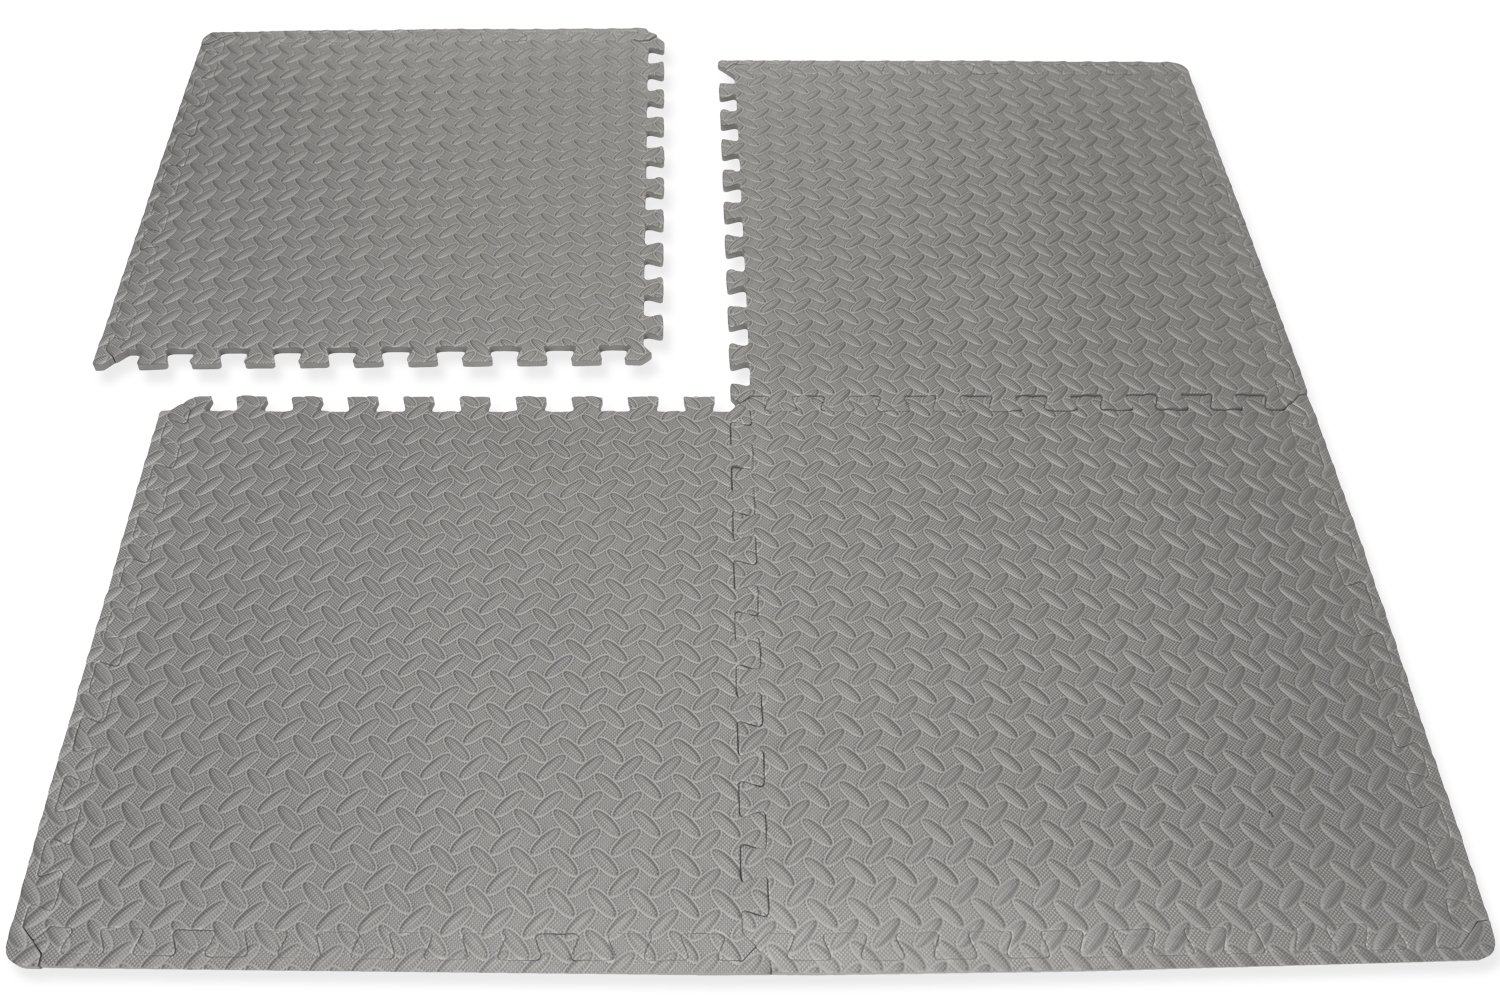 anti purpose pack tile x foam ottomanson eva mats mat green efm fatigue flooring p multi exercise gym interlocking in